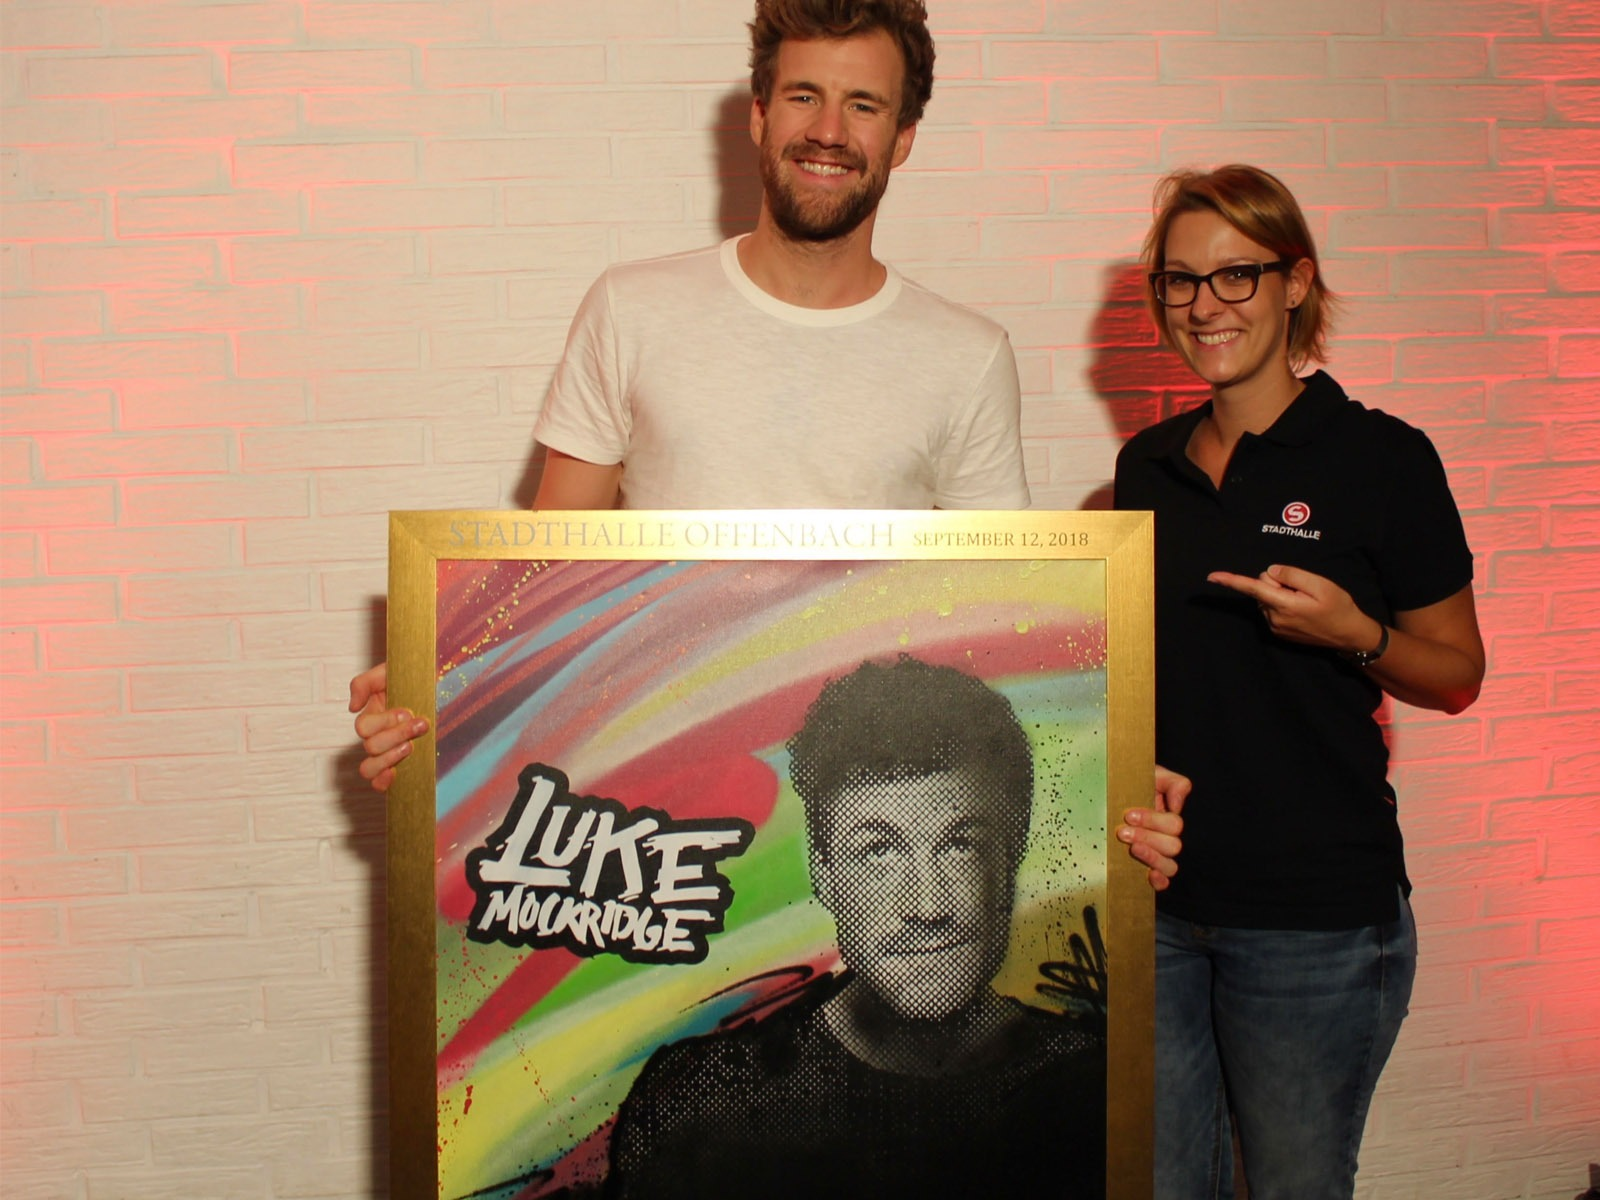 graffitiauftrag_artmos4_sold_out_award_luke_mockridge_Stadthalle_Offenbach_Leinwand_Graffiti